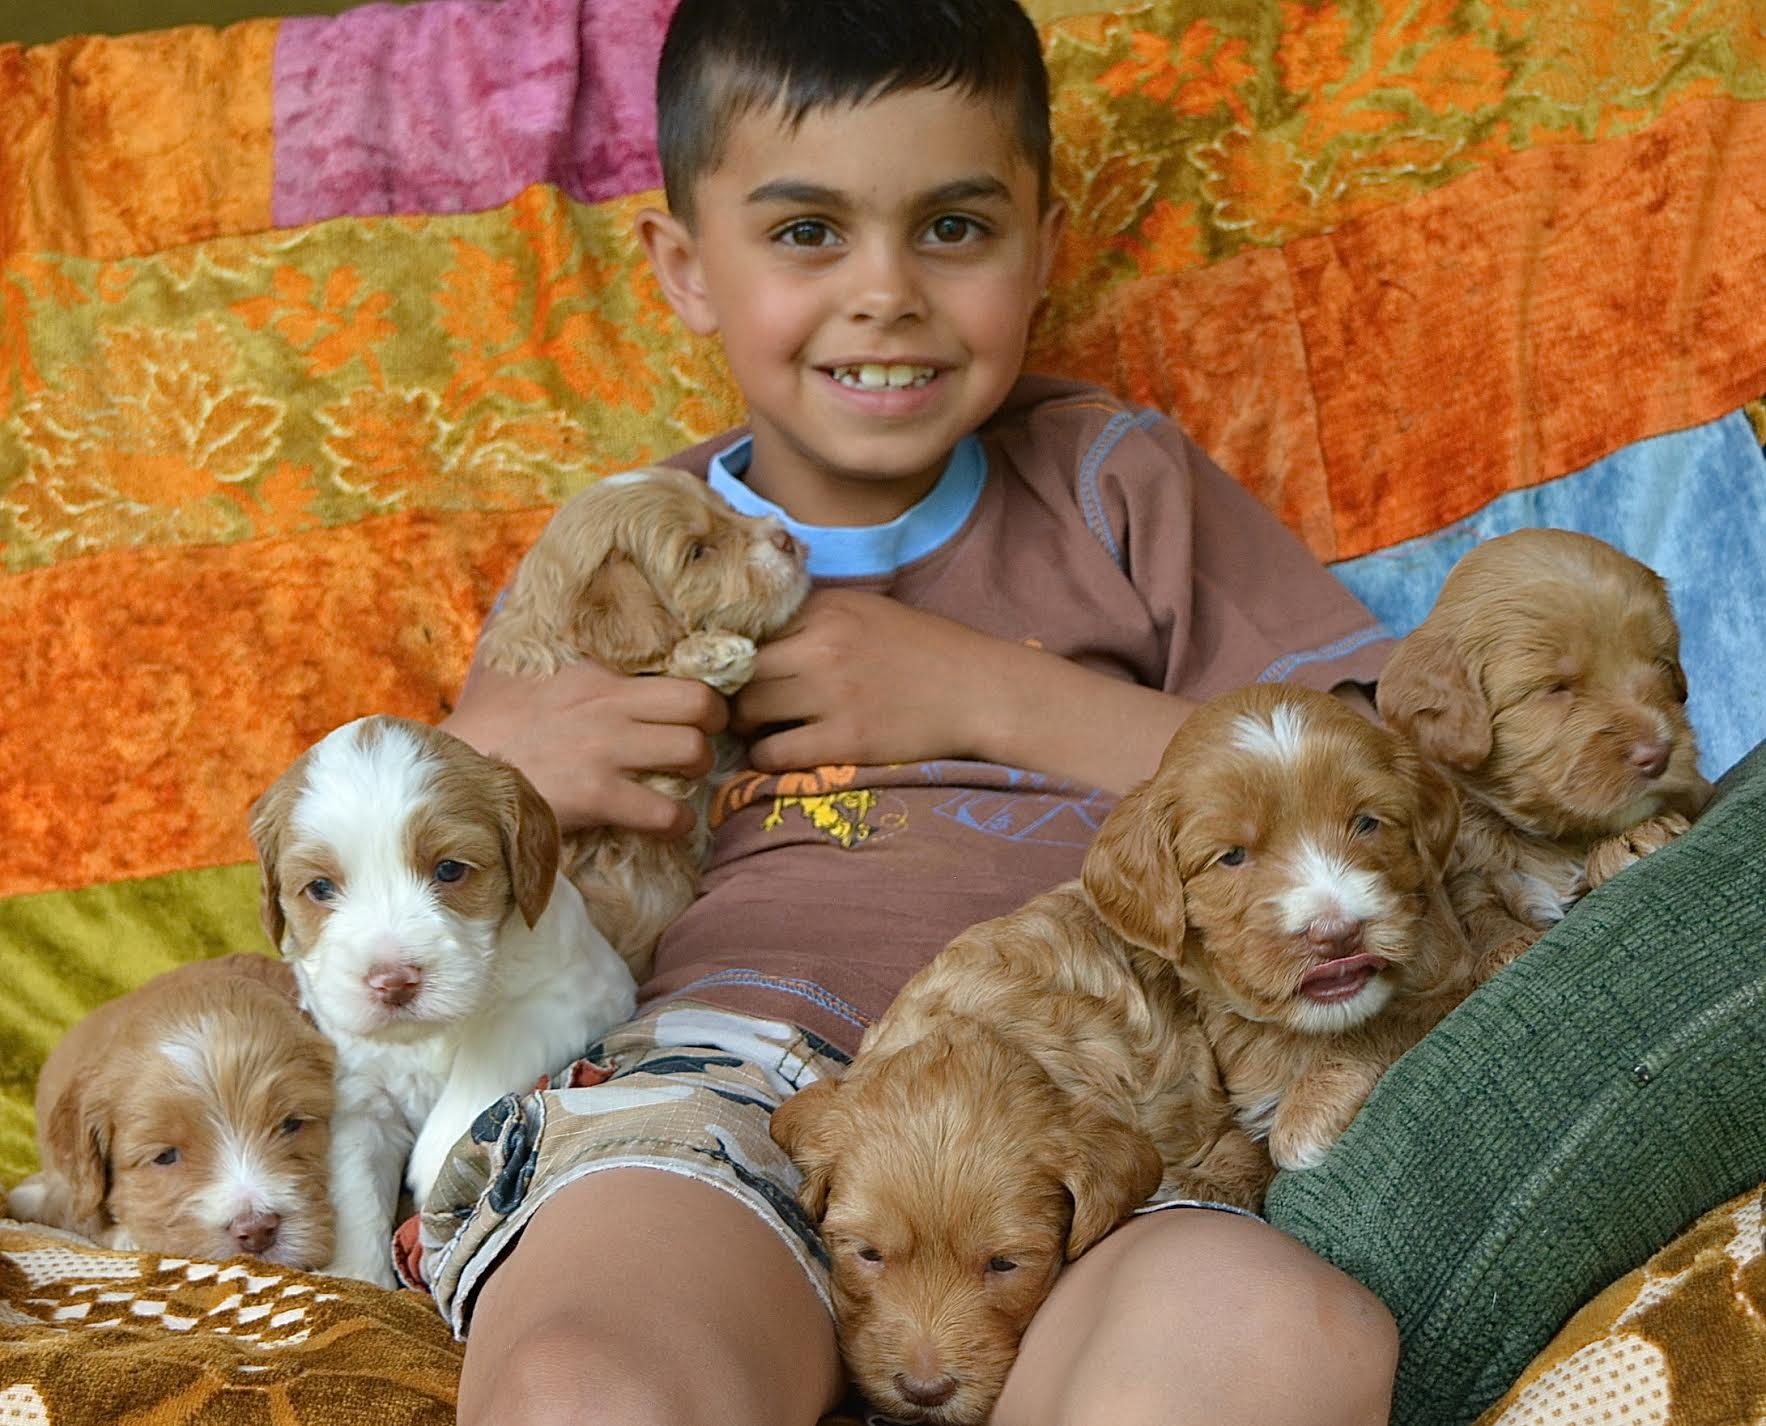 Lucca, The Puppy Socializer and Polly's Puppies